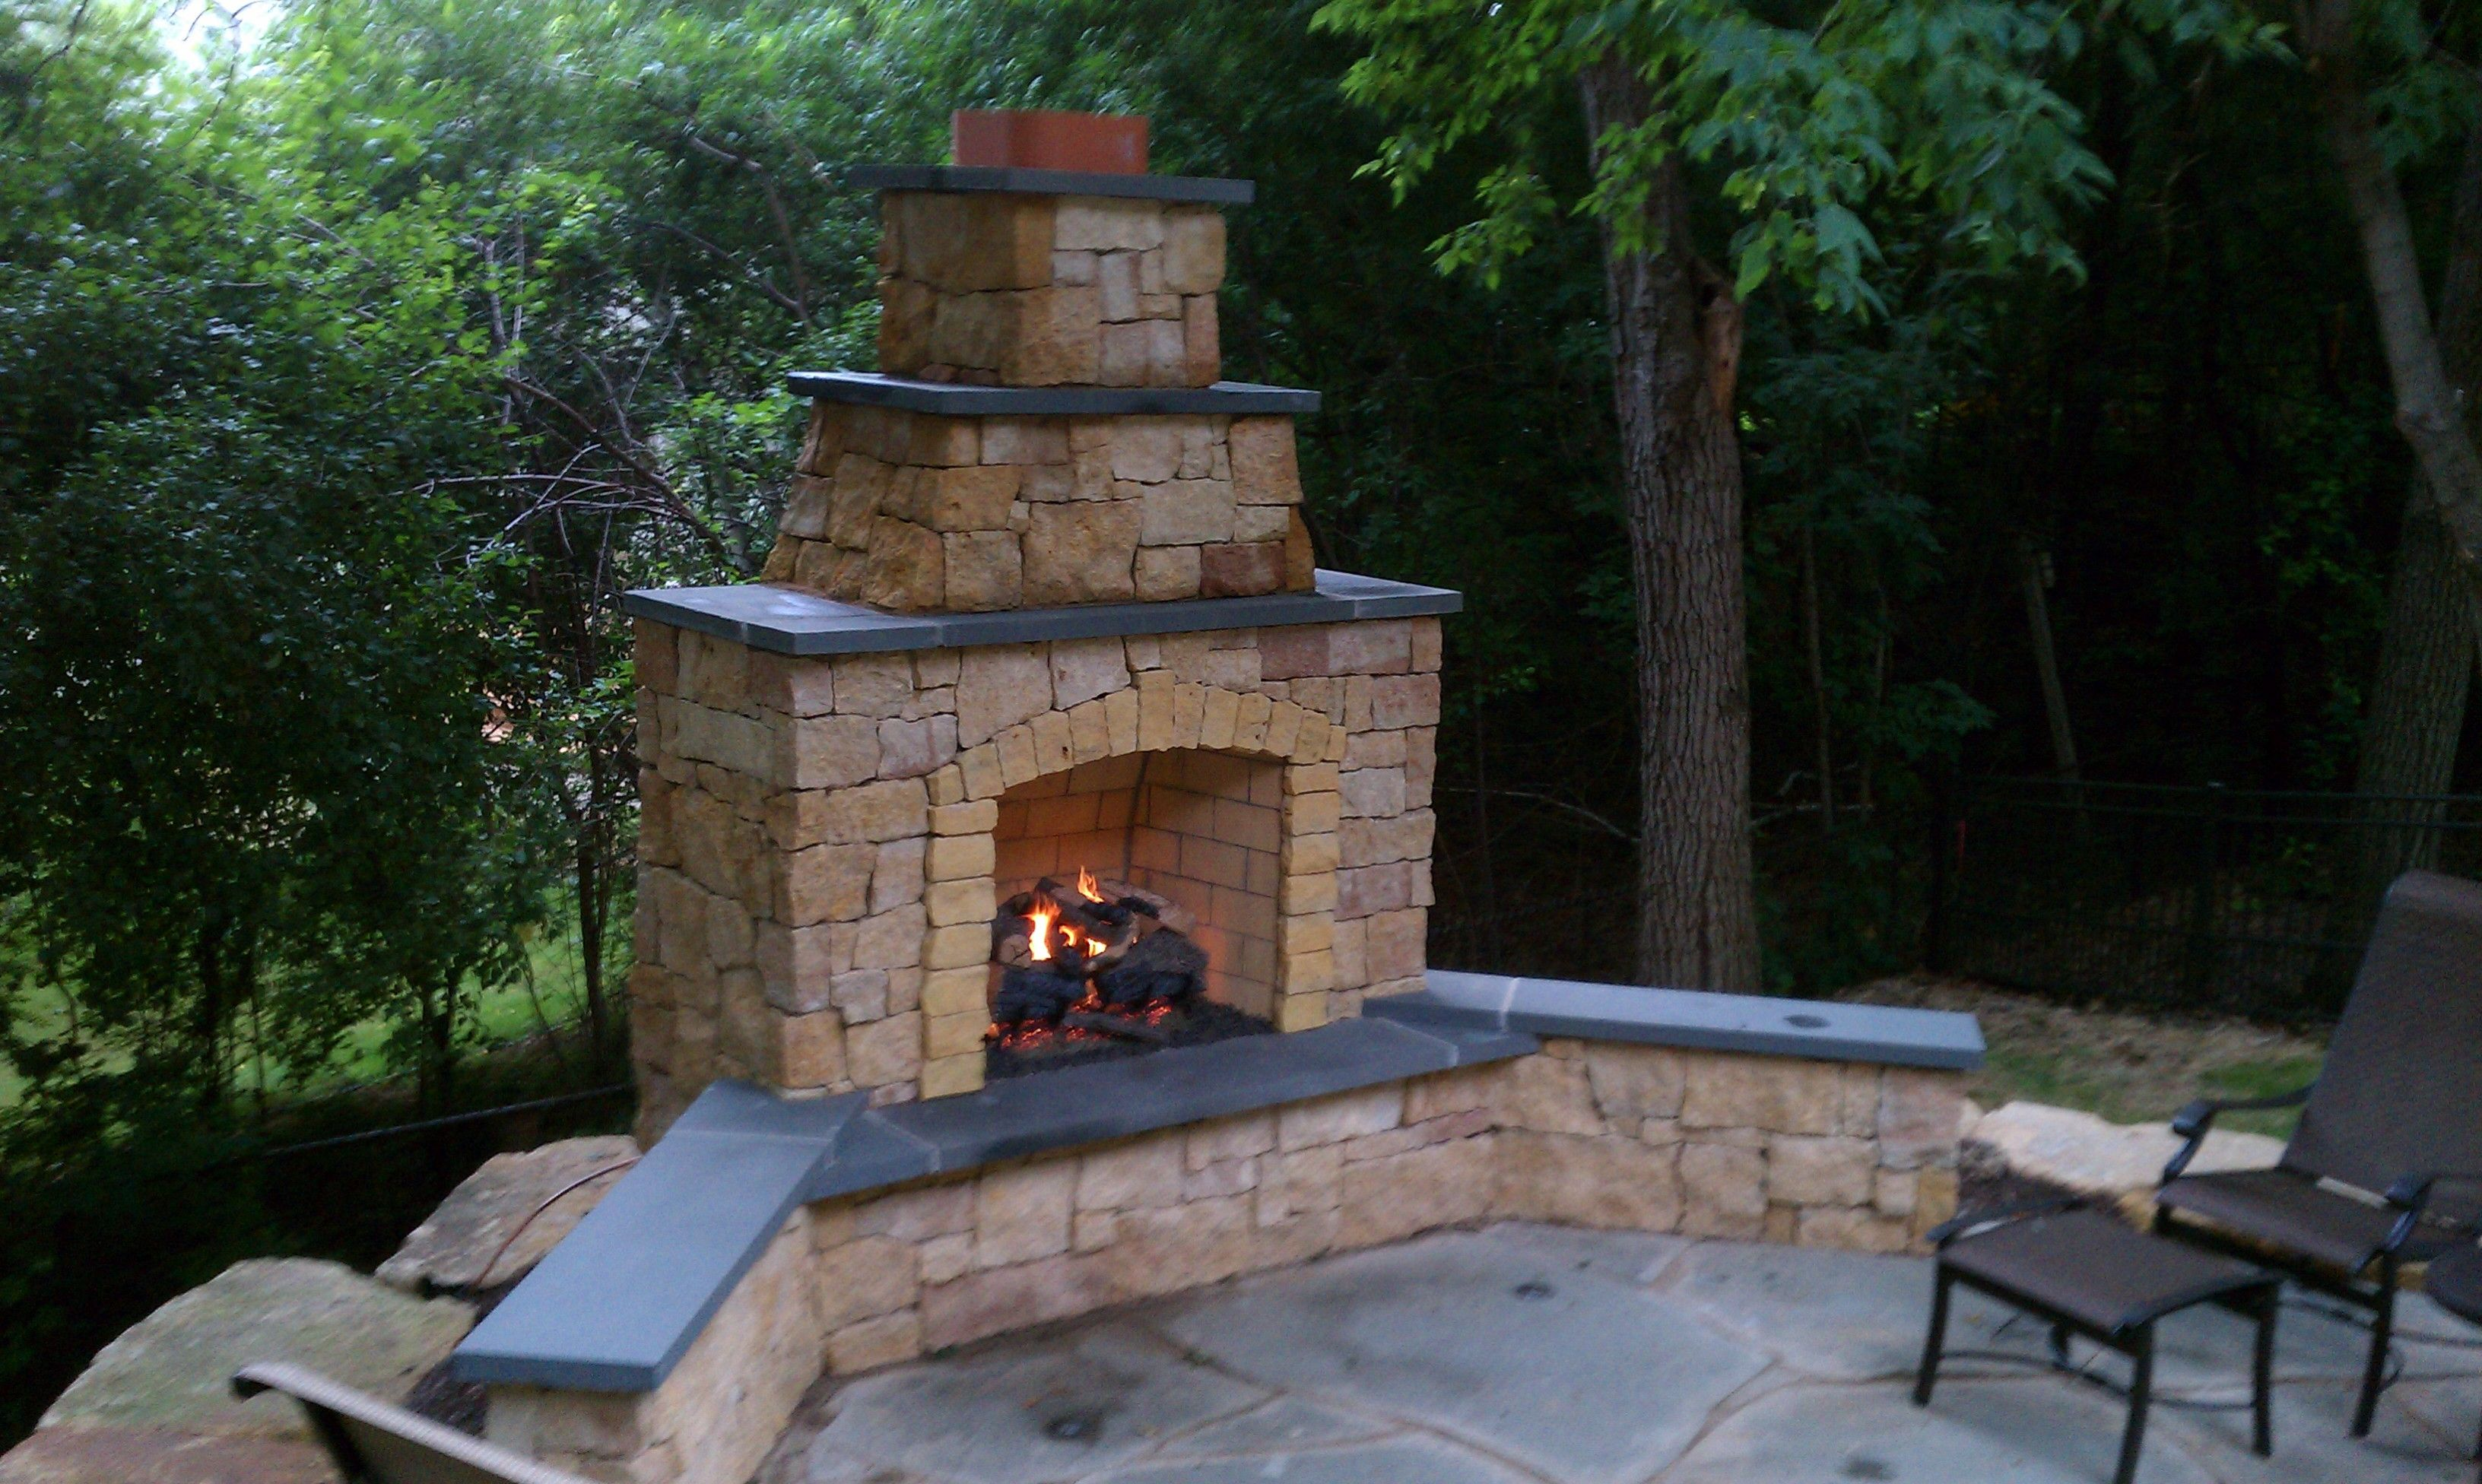 Outdoor Fireplace Chimney Cap Ideas Outdoor Gas Fireplaces Outdoor Gas Fireplace Outdoor Fireplace Outside Fireplace